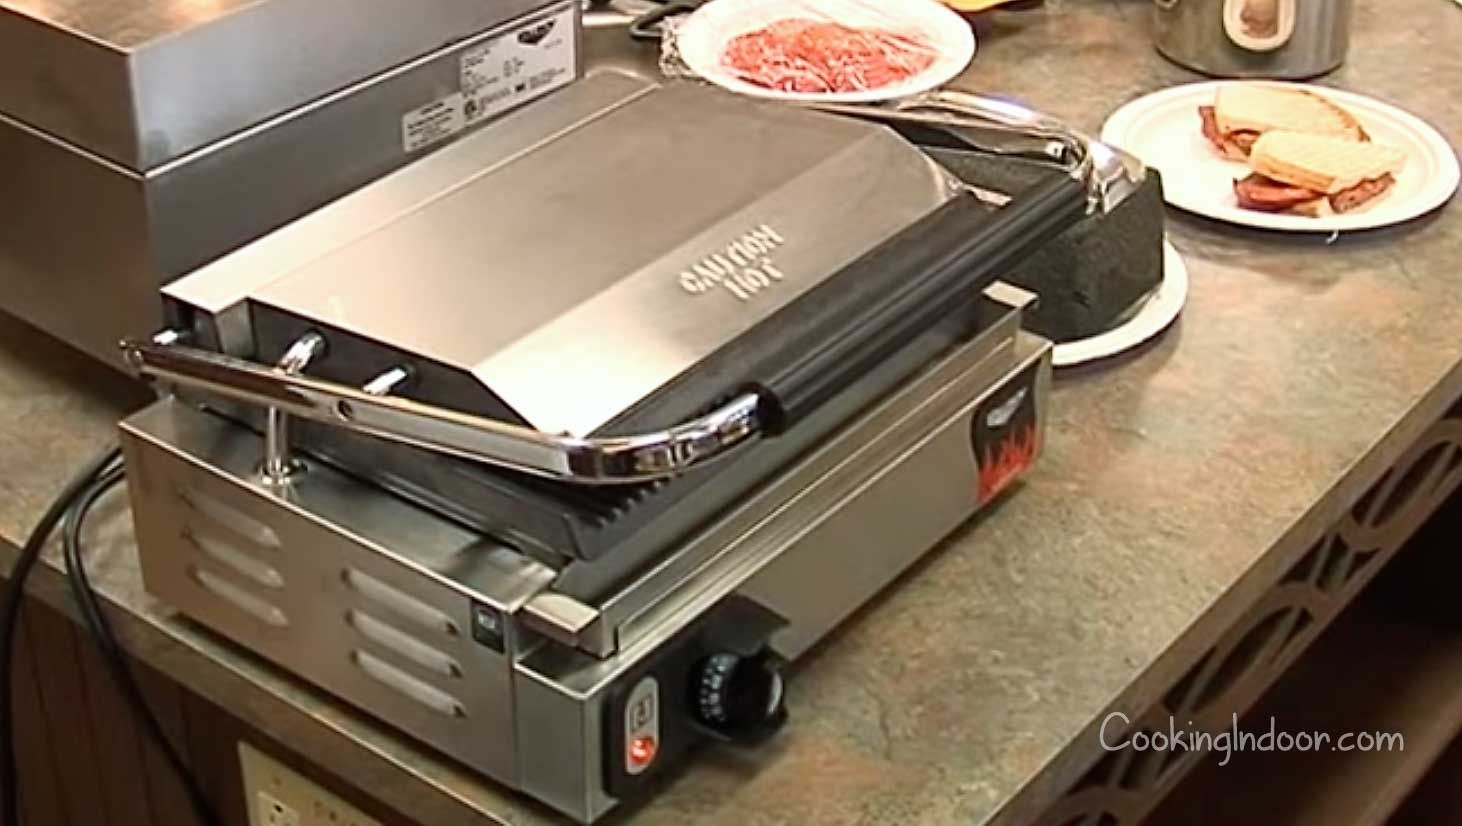 Best double panini grill